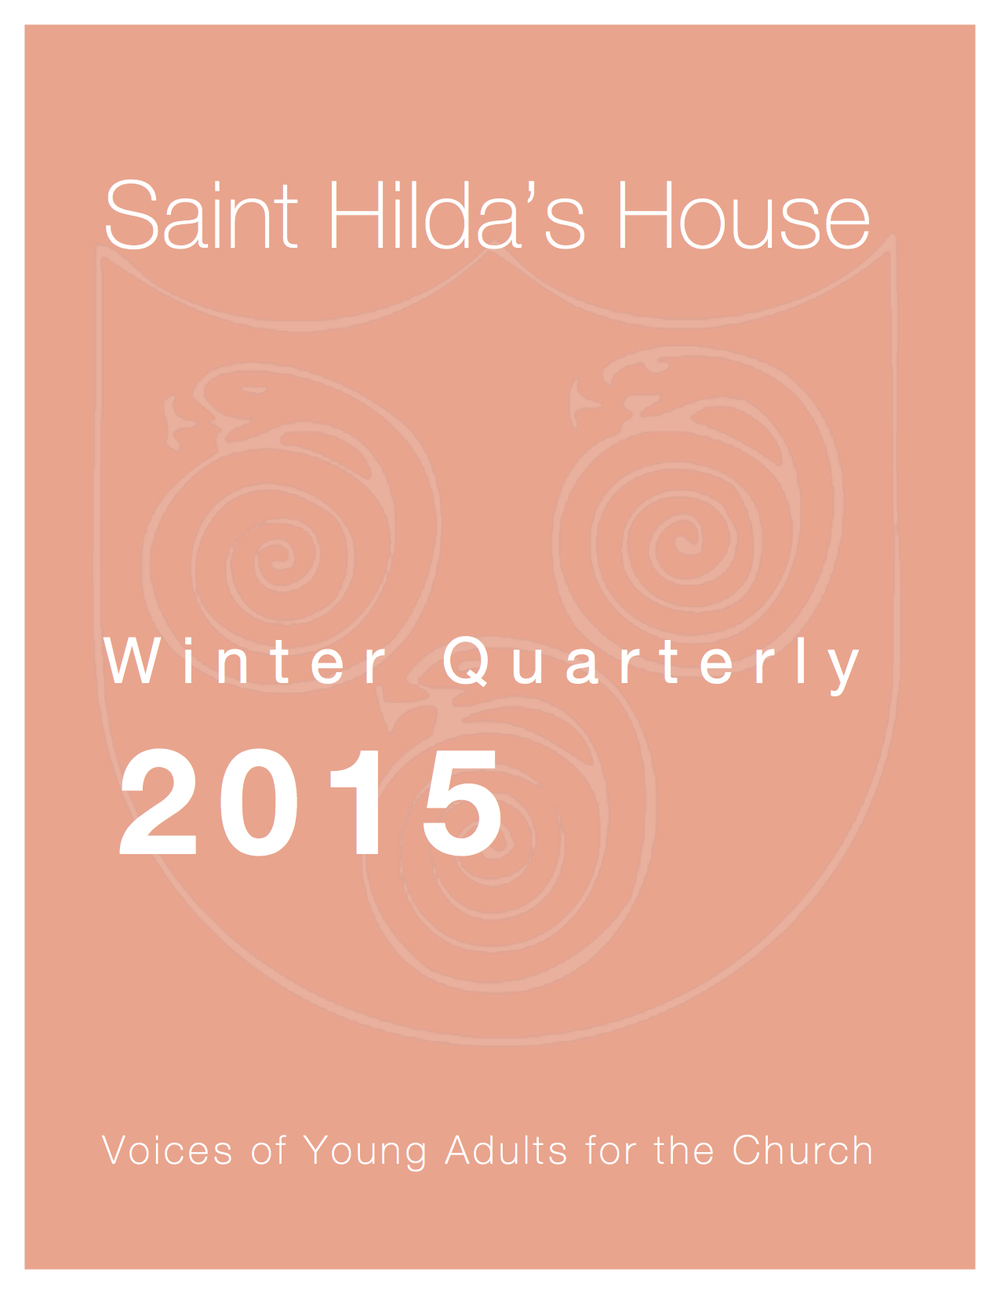 Winter Quarterly 2015